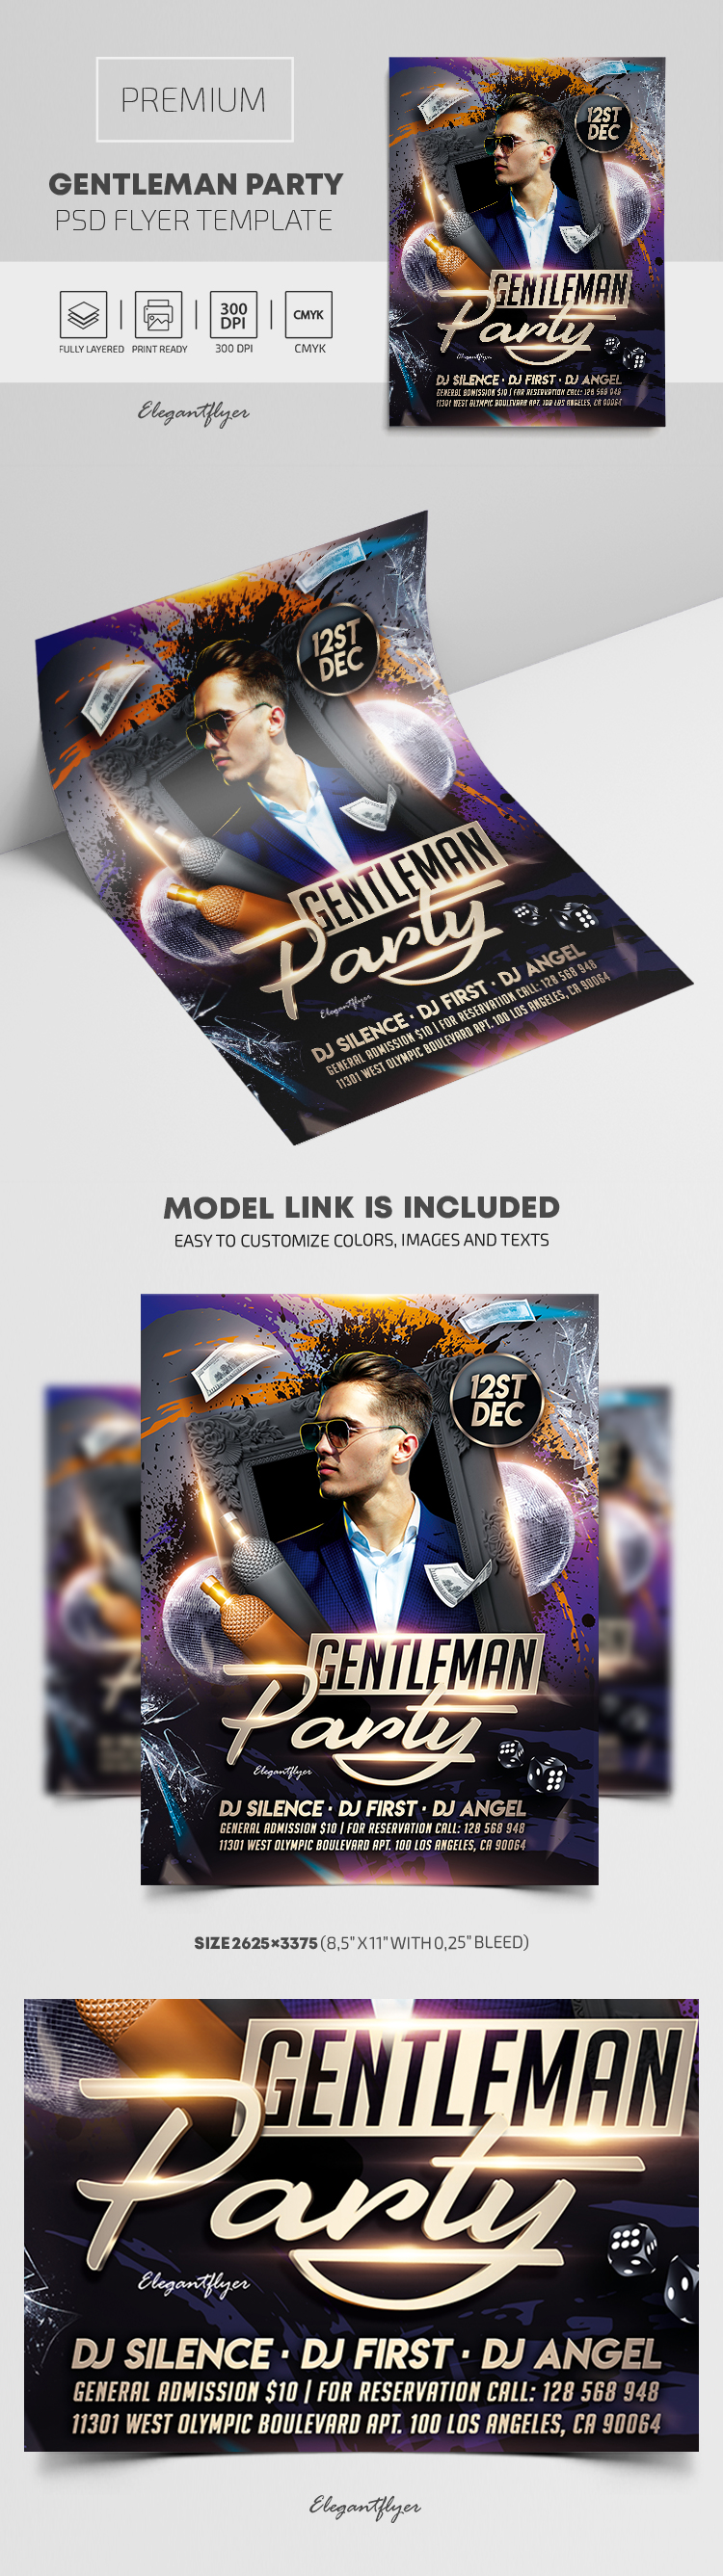 Gentleman Party – Premium PSD Flyer Template